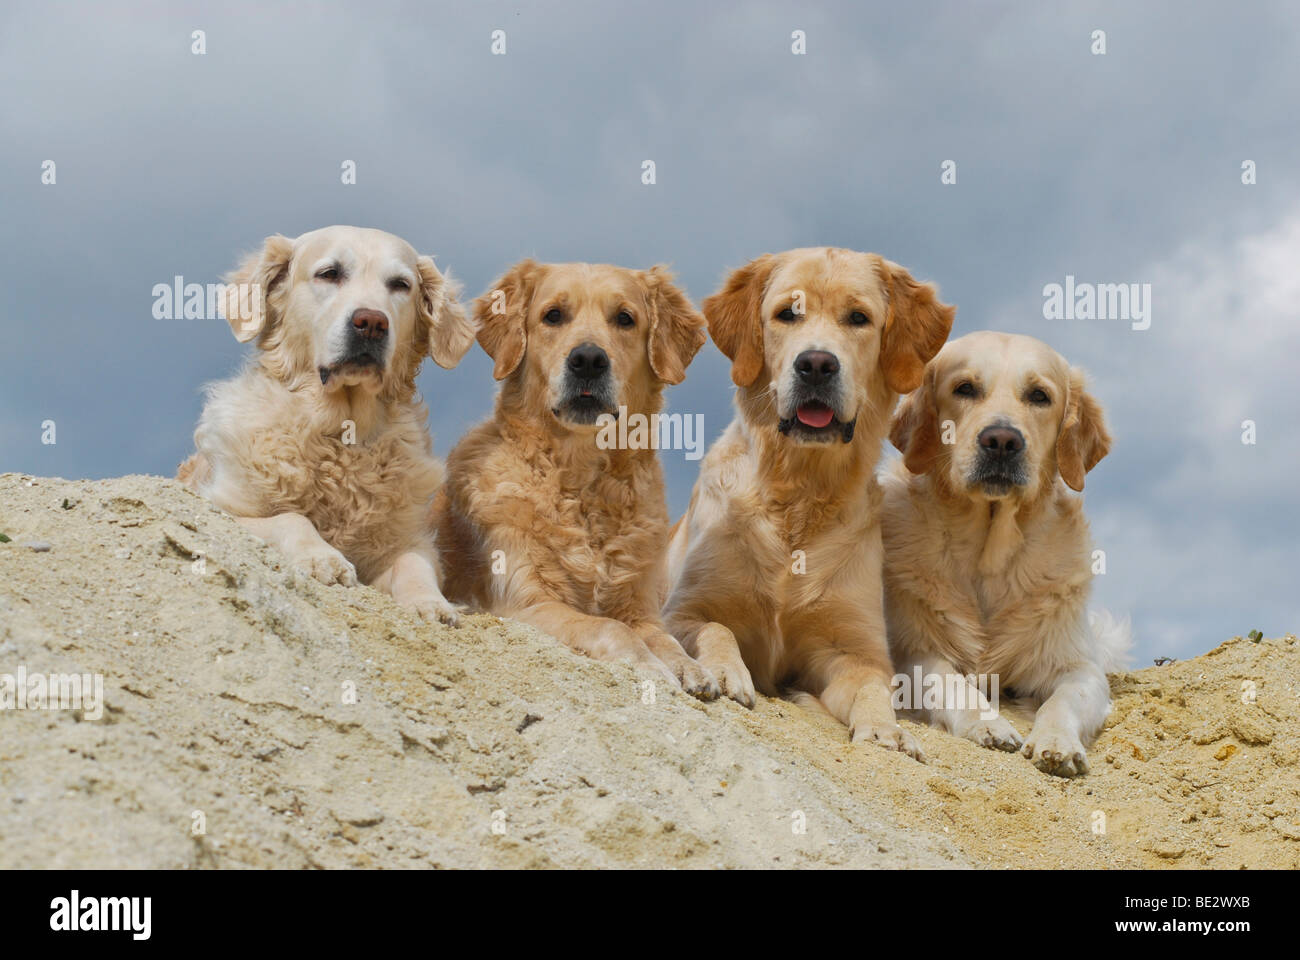 Four Golden Retrievers lying in the sand - Stock Image